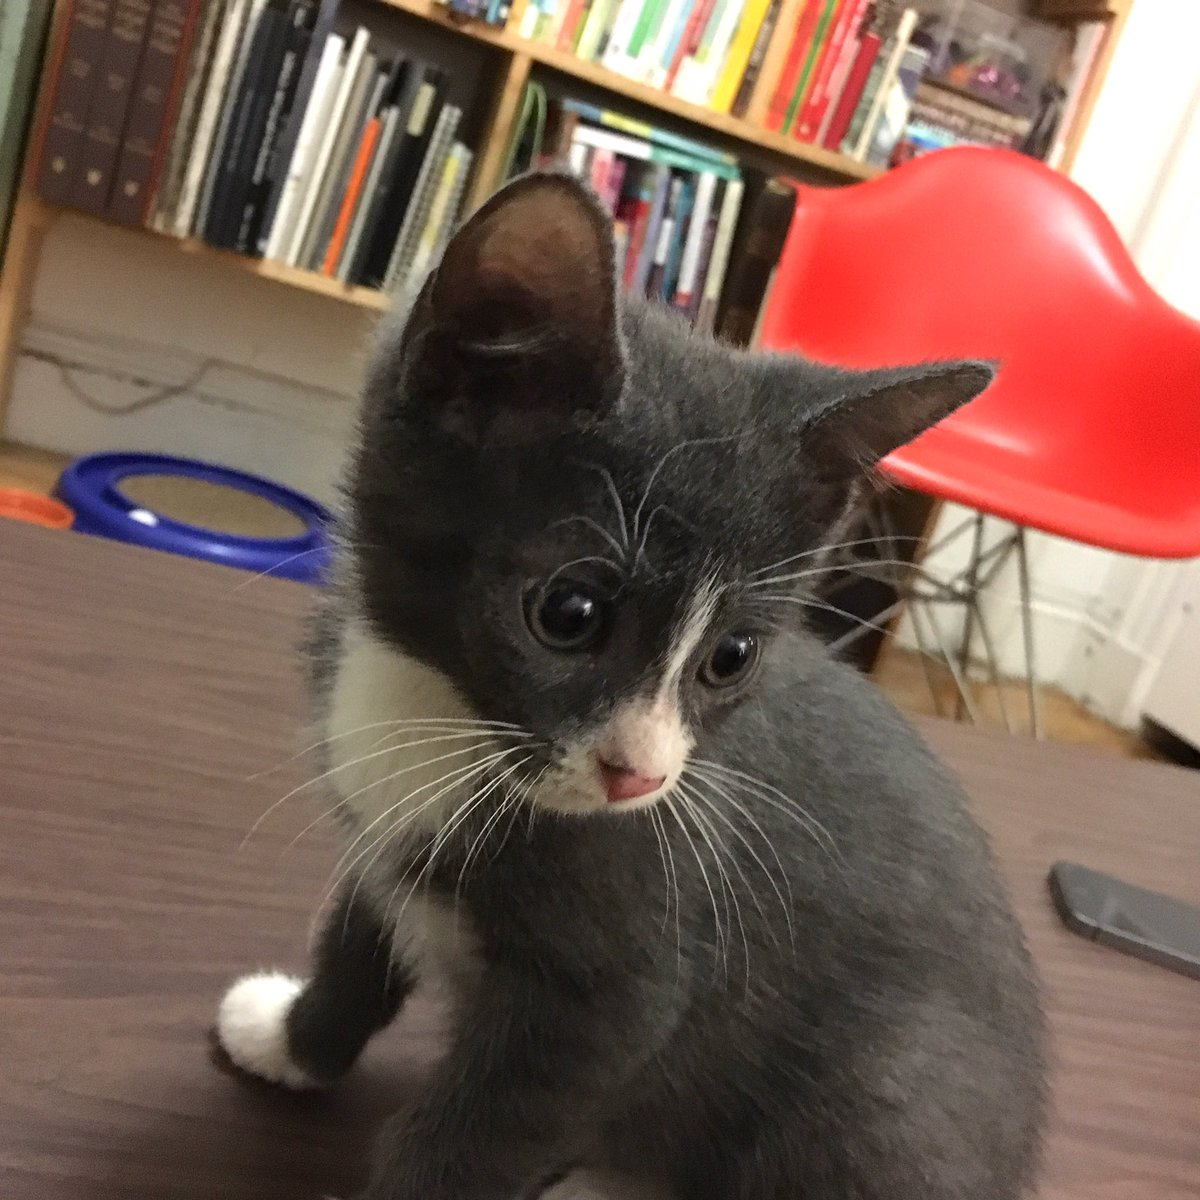 Brooklyn/NYC pals: Please adopt this wonderful kitten--I'm utterly heartbroken that I can't. (more info in photos) https://t.co/qjE0MSSbpR